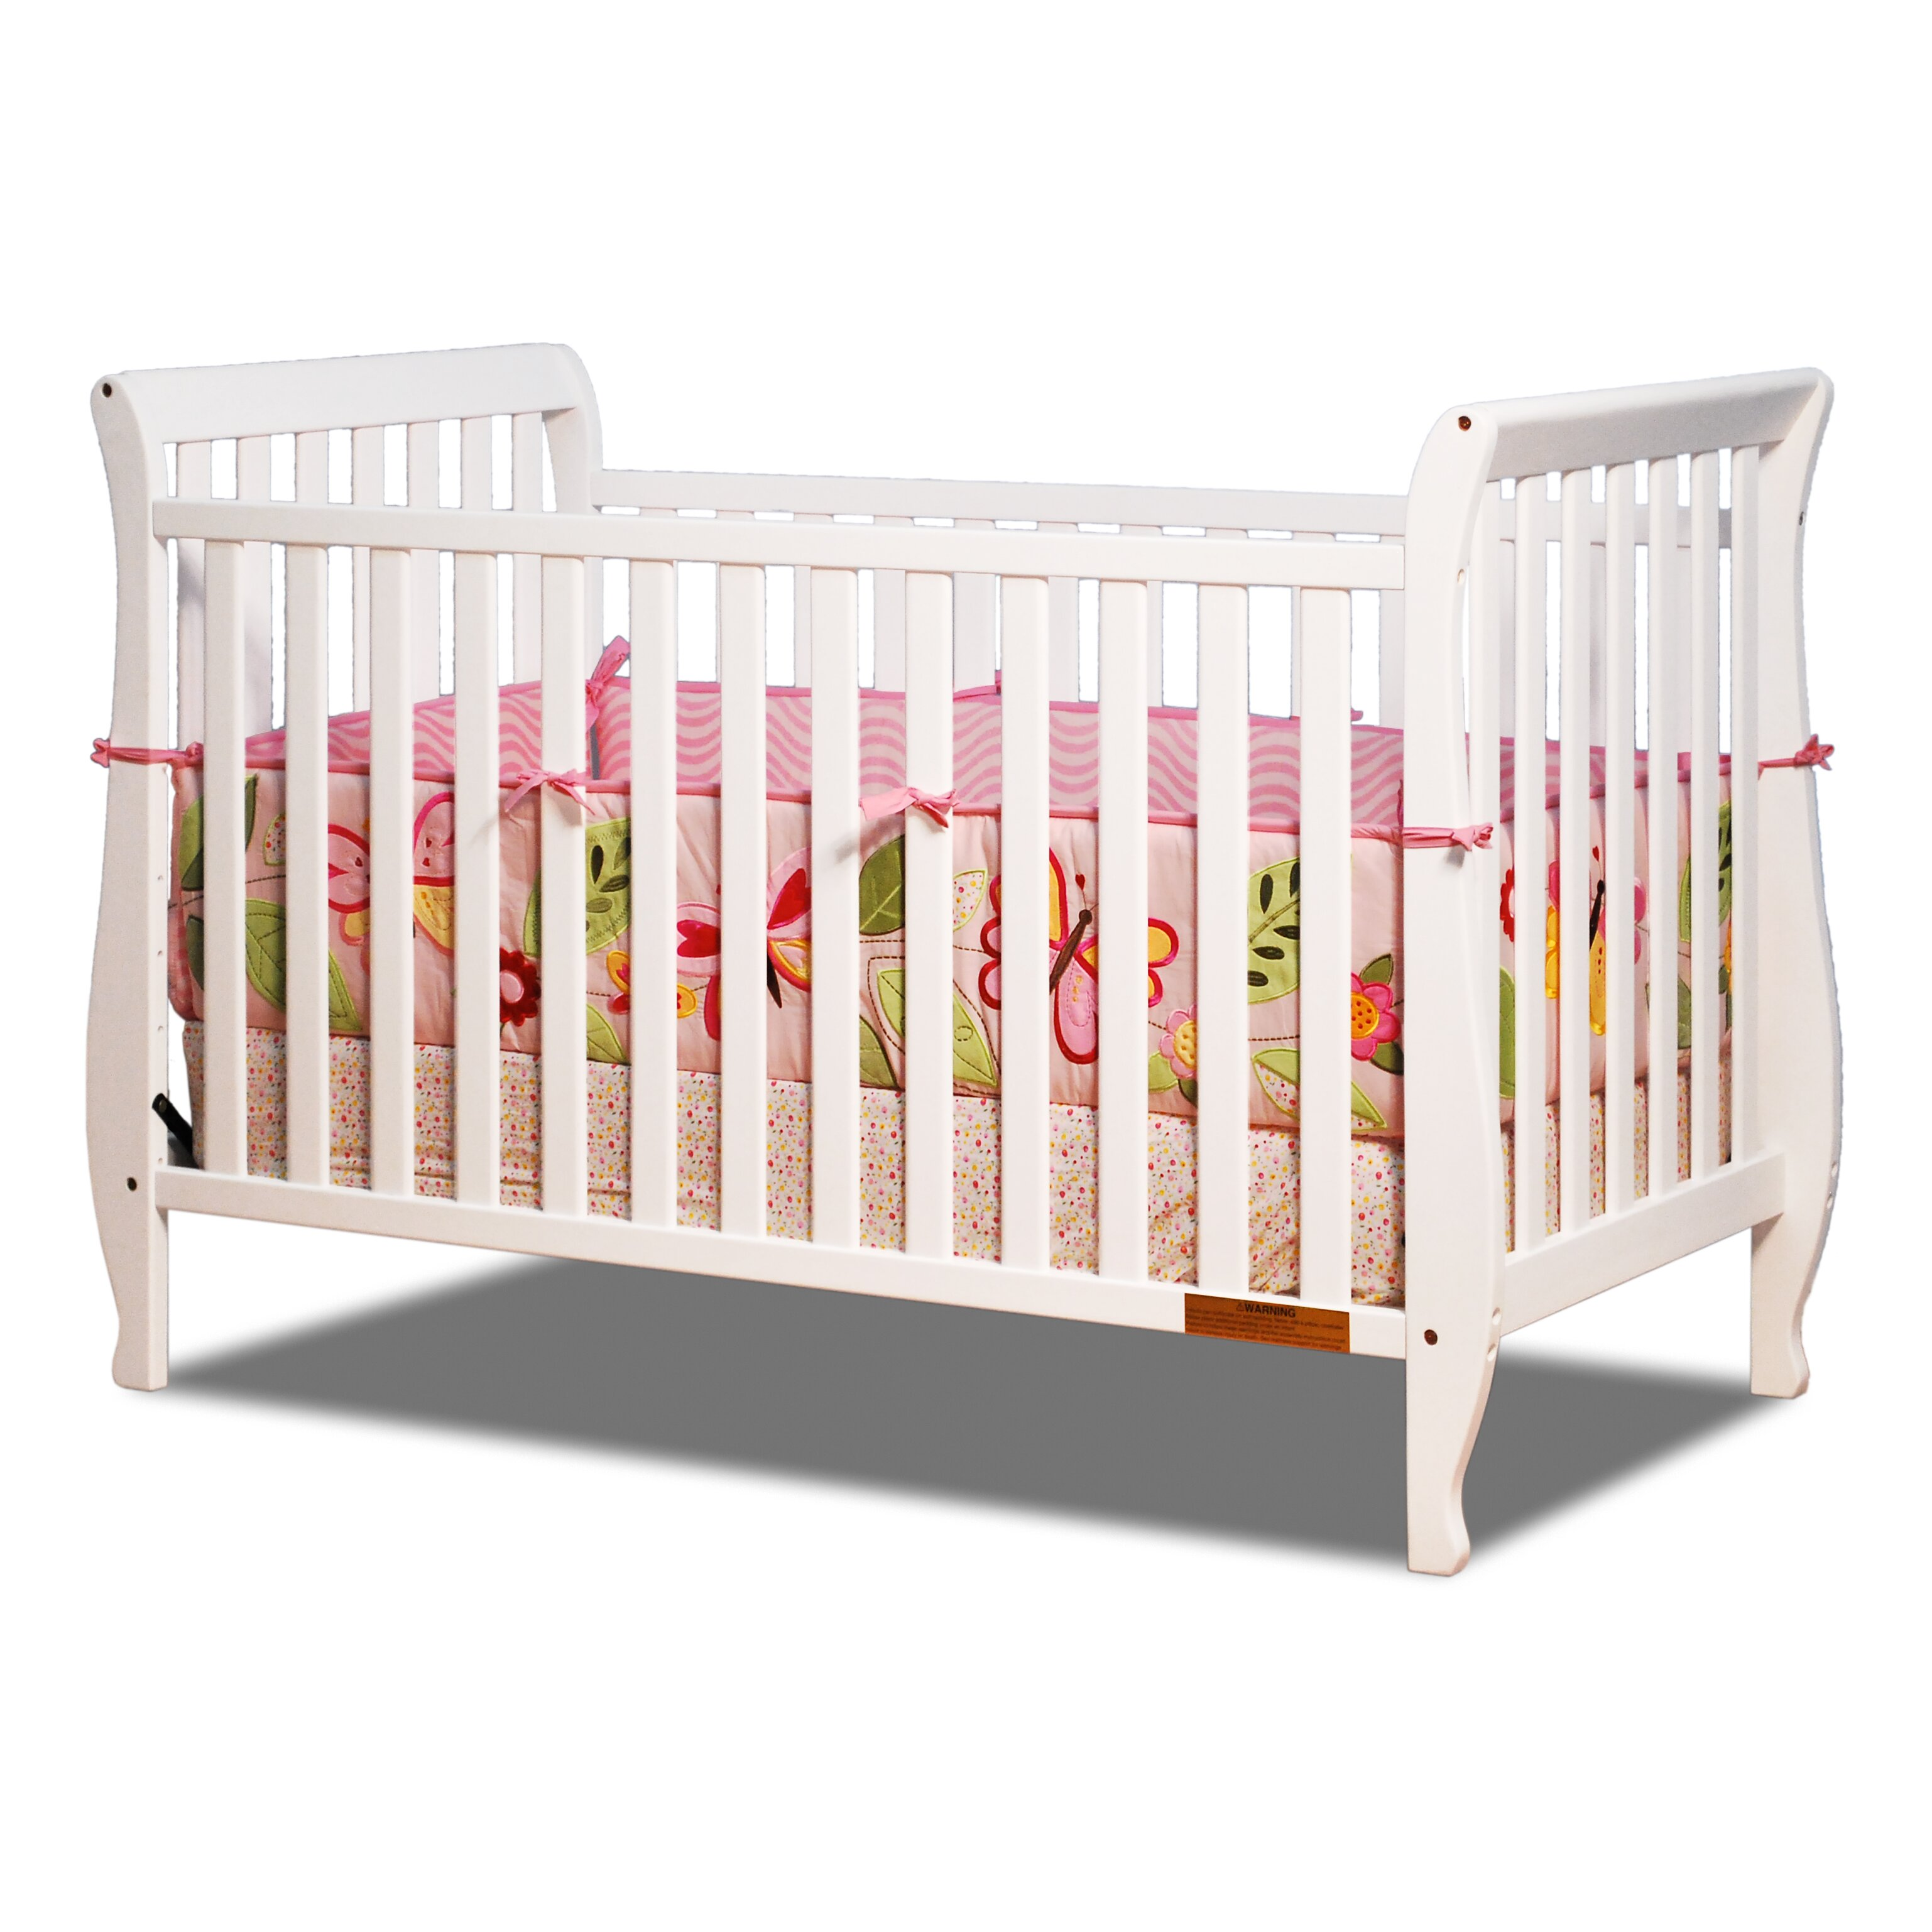 Afg international furniture naomi 4 in 1 convertible crib for I furniture reviews